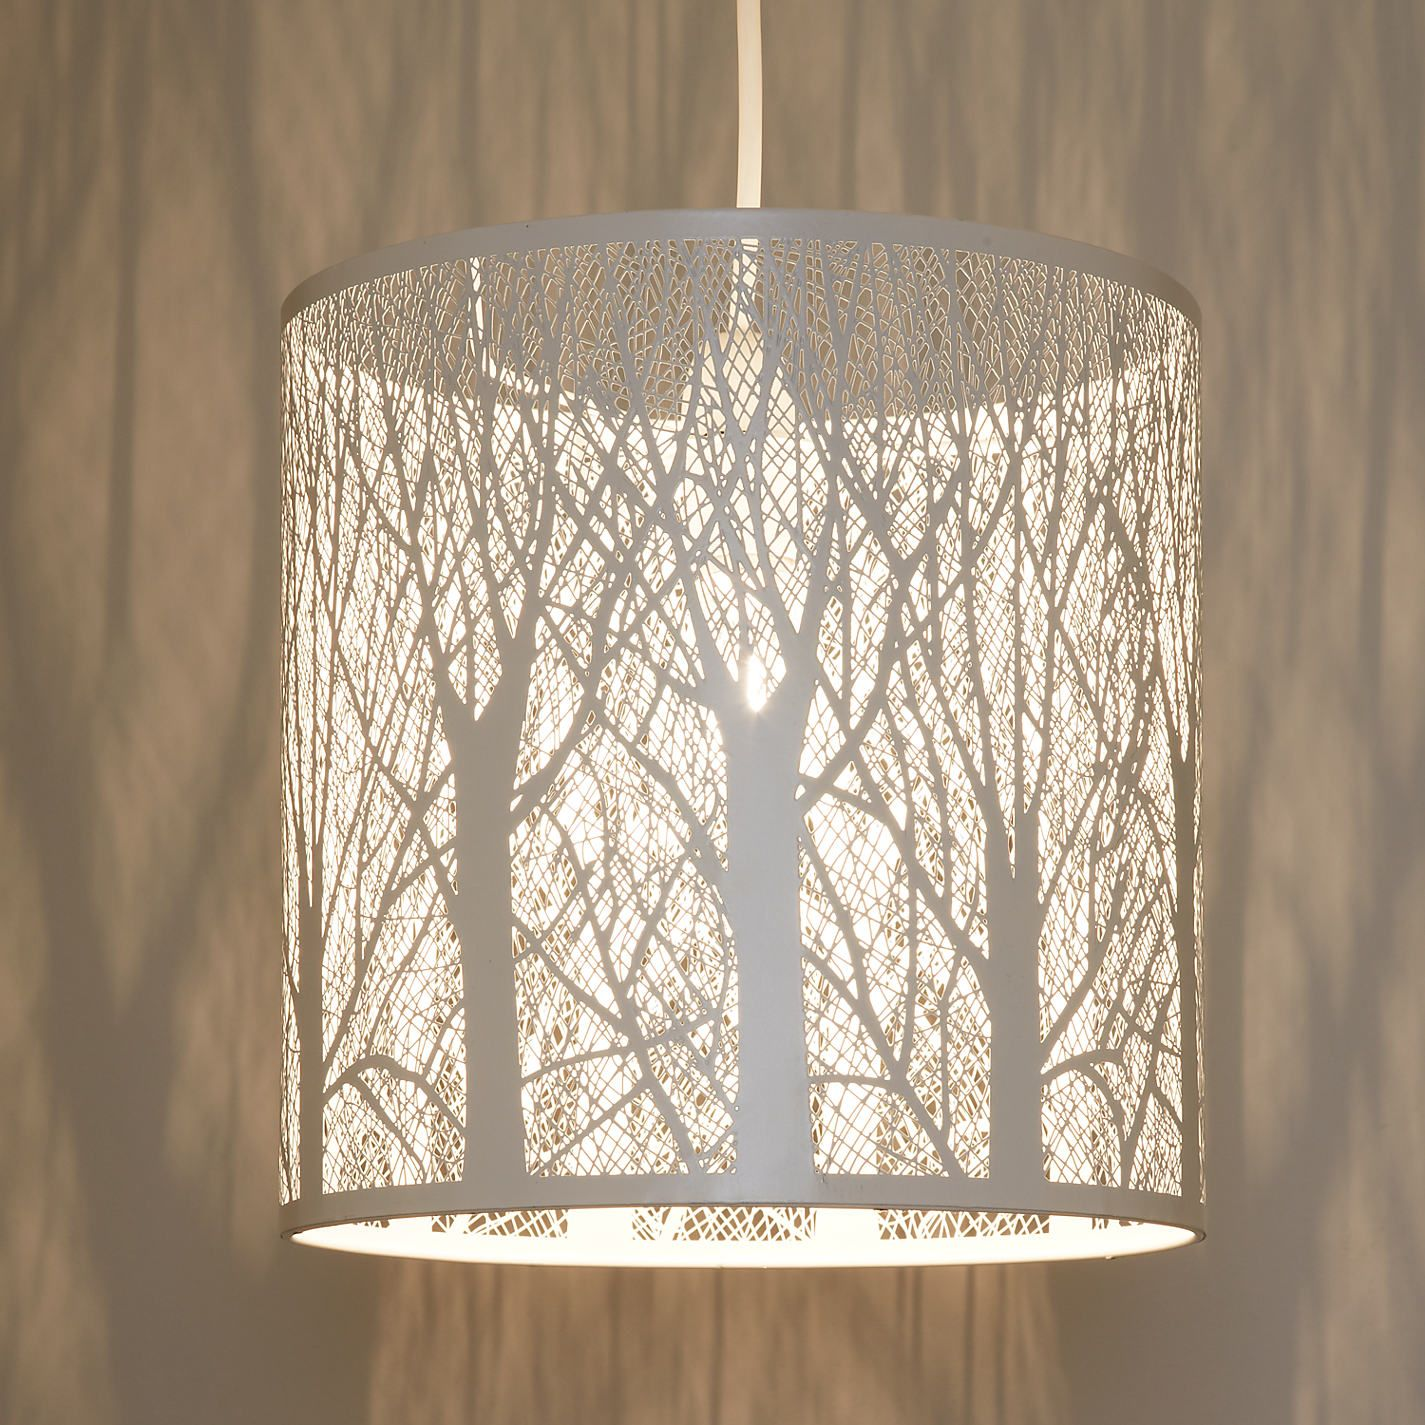 Devon table lamp devon john lewis and walls buy john lewis devon easy to fit ceiling shade small john lewis geotapseo Image collections